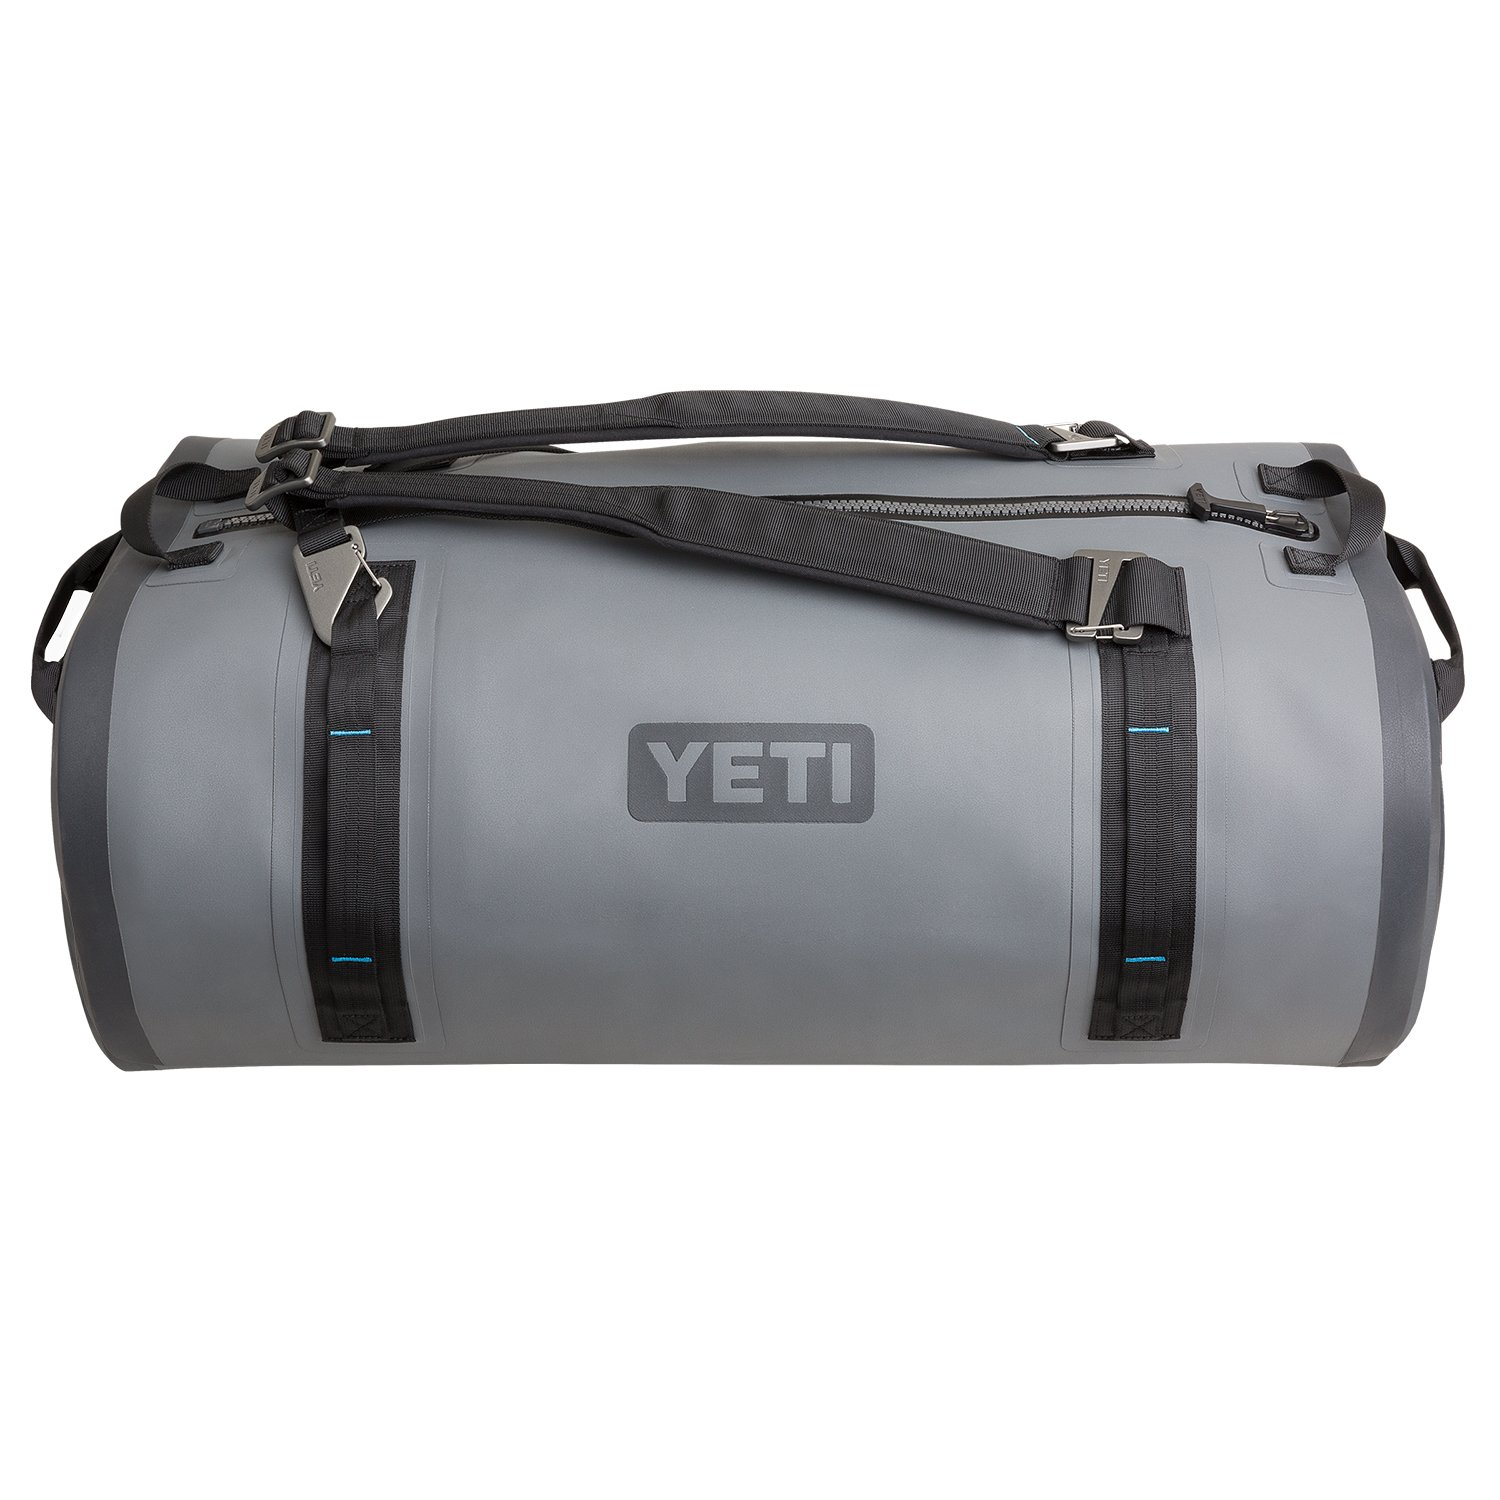 YETI Panga Airtight Waterproof and Submersible Bags